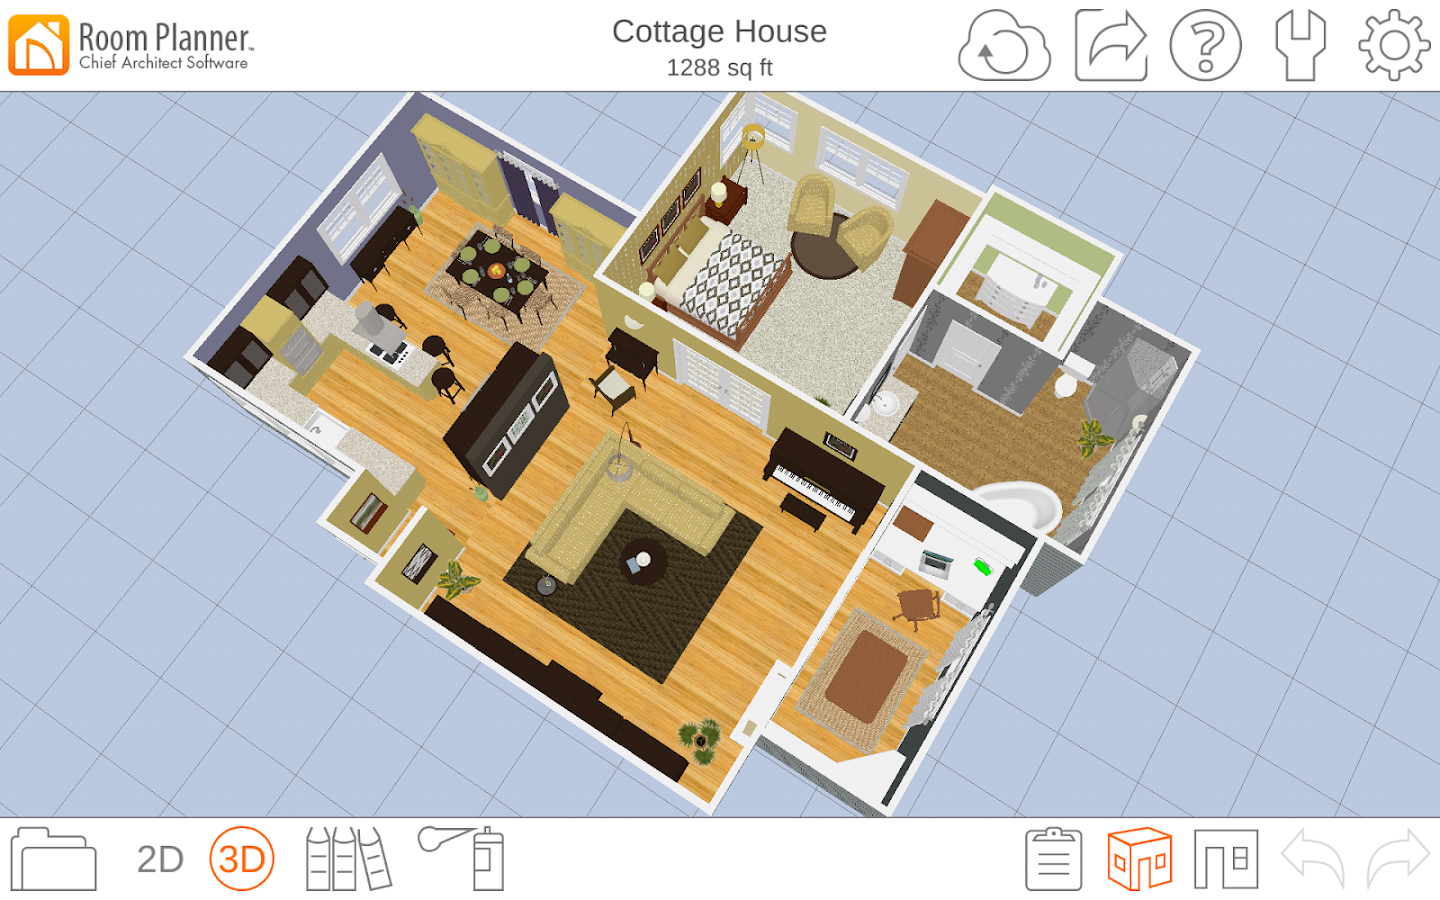 Room planner home design android apps on google play for Free online room planner